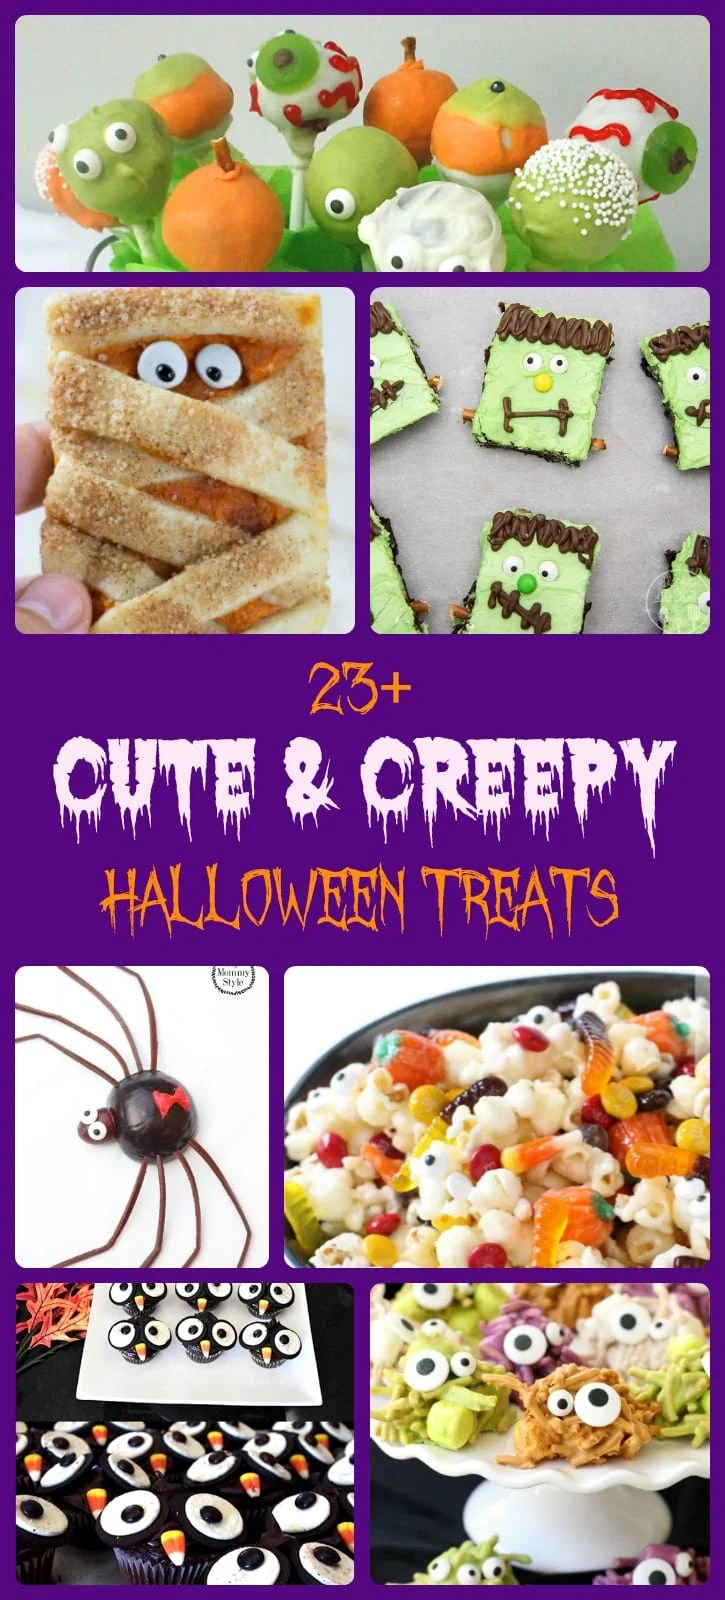 Halloween treats perfect for parties! Cute, creepy, spooky and DELICIOUS! Here are 23+ Halloween Treats you need to make this fall! Fun #Halloween #recipes from Butter With A Side of Bread